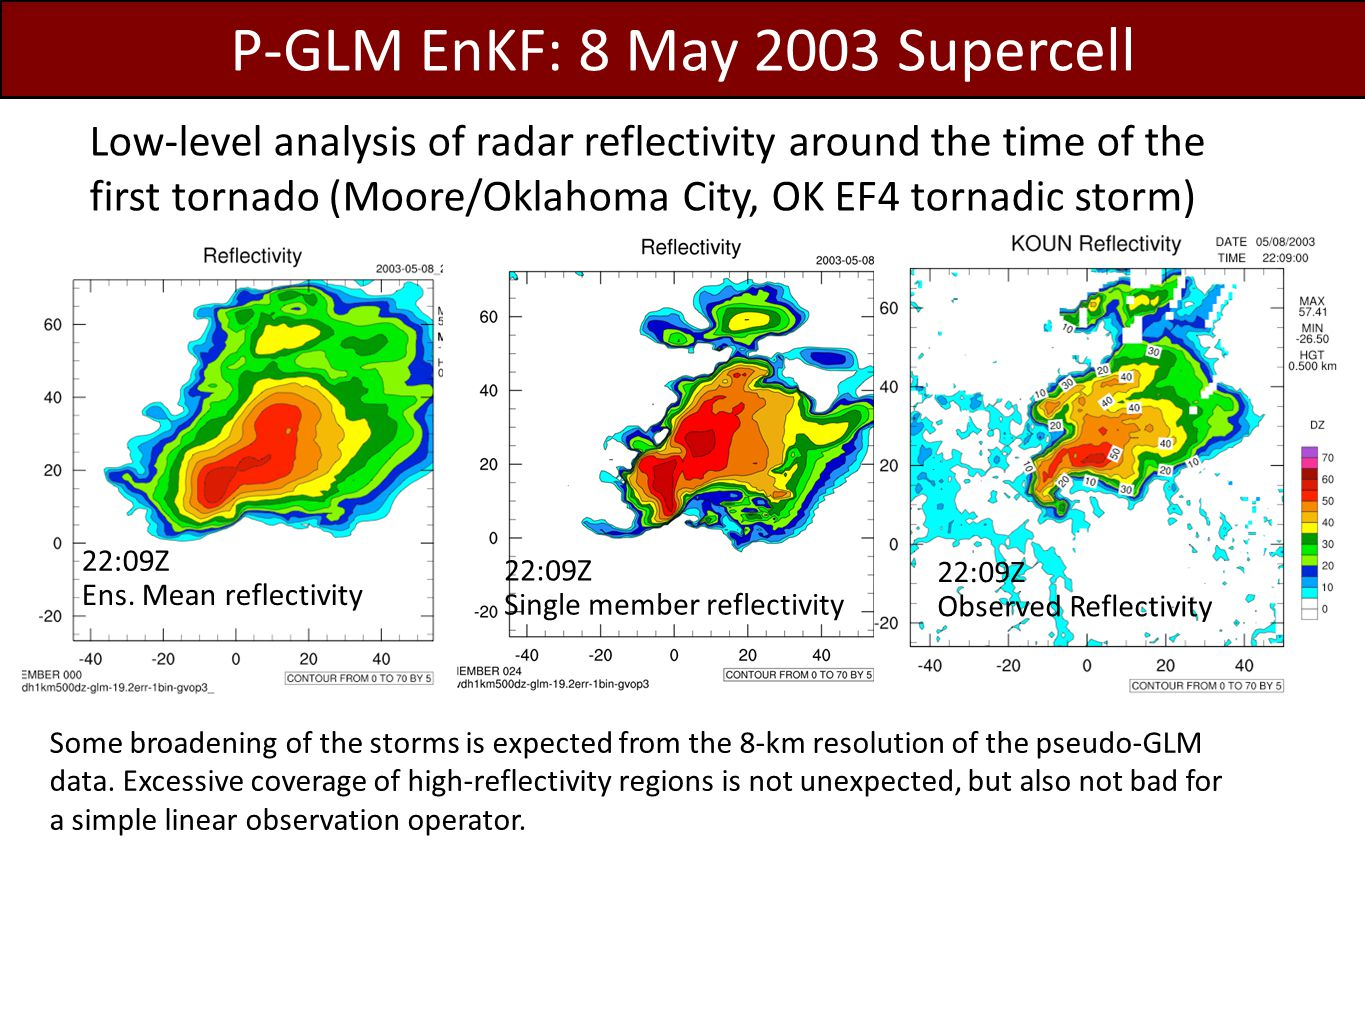 Probability of Vorticity > 0.016 s -1 at 1.75 km model height Radar radial velocity (Vr) assimilation 1 minute pGLM assimilation (Assimilation ended at 22:09) EnKF analyses of low-level mesocyclone (indicative of tornado potential) shows supercell storm character in the p-GLM assimilation.